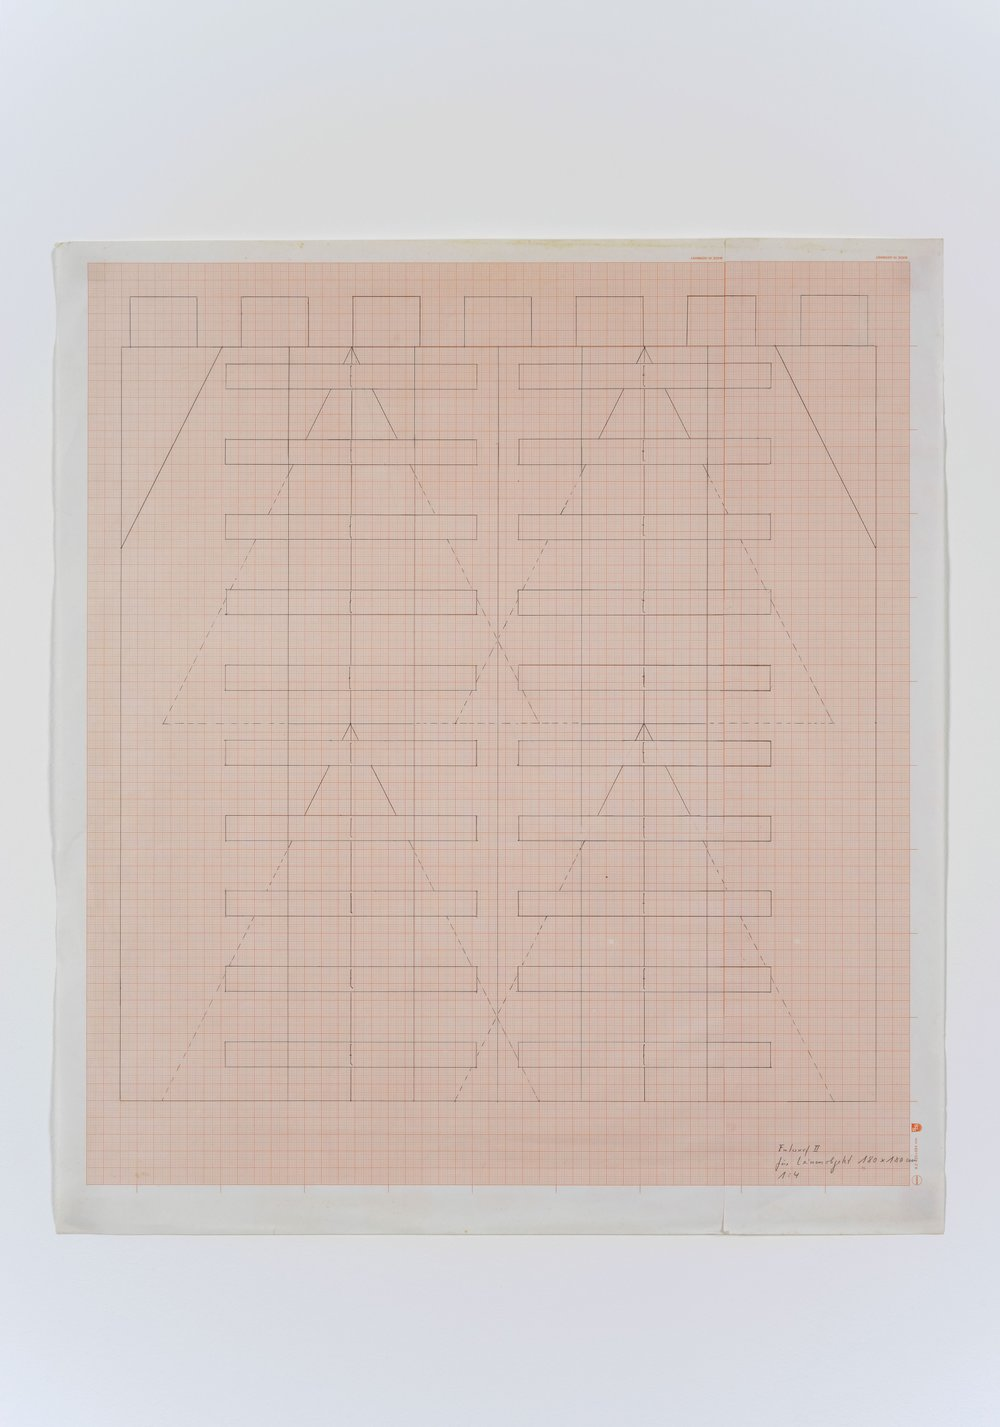 Untitled , early 1980's construction drawing on scale paper,57 x 65 cm, framed